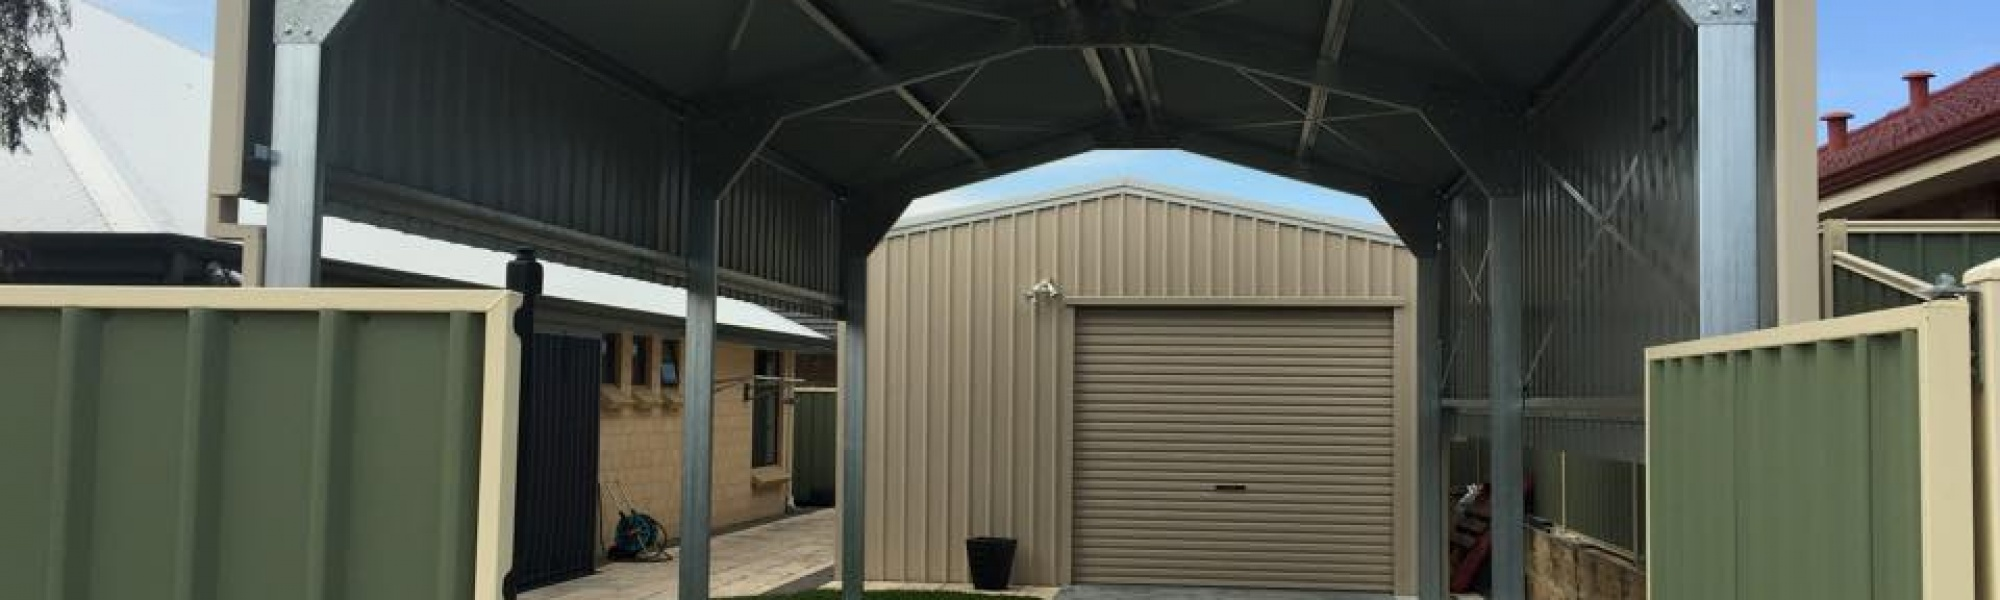 Industry Maintenance Solutions - Carport